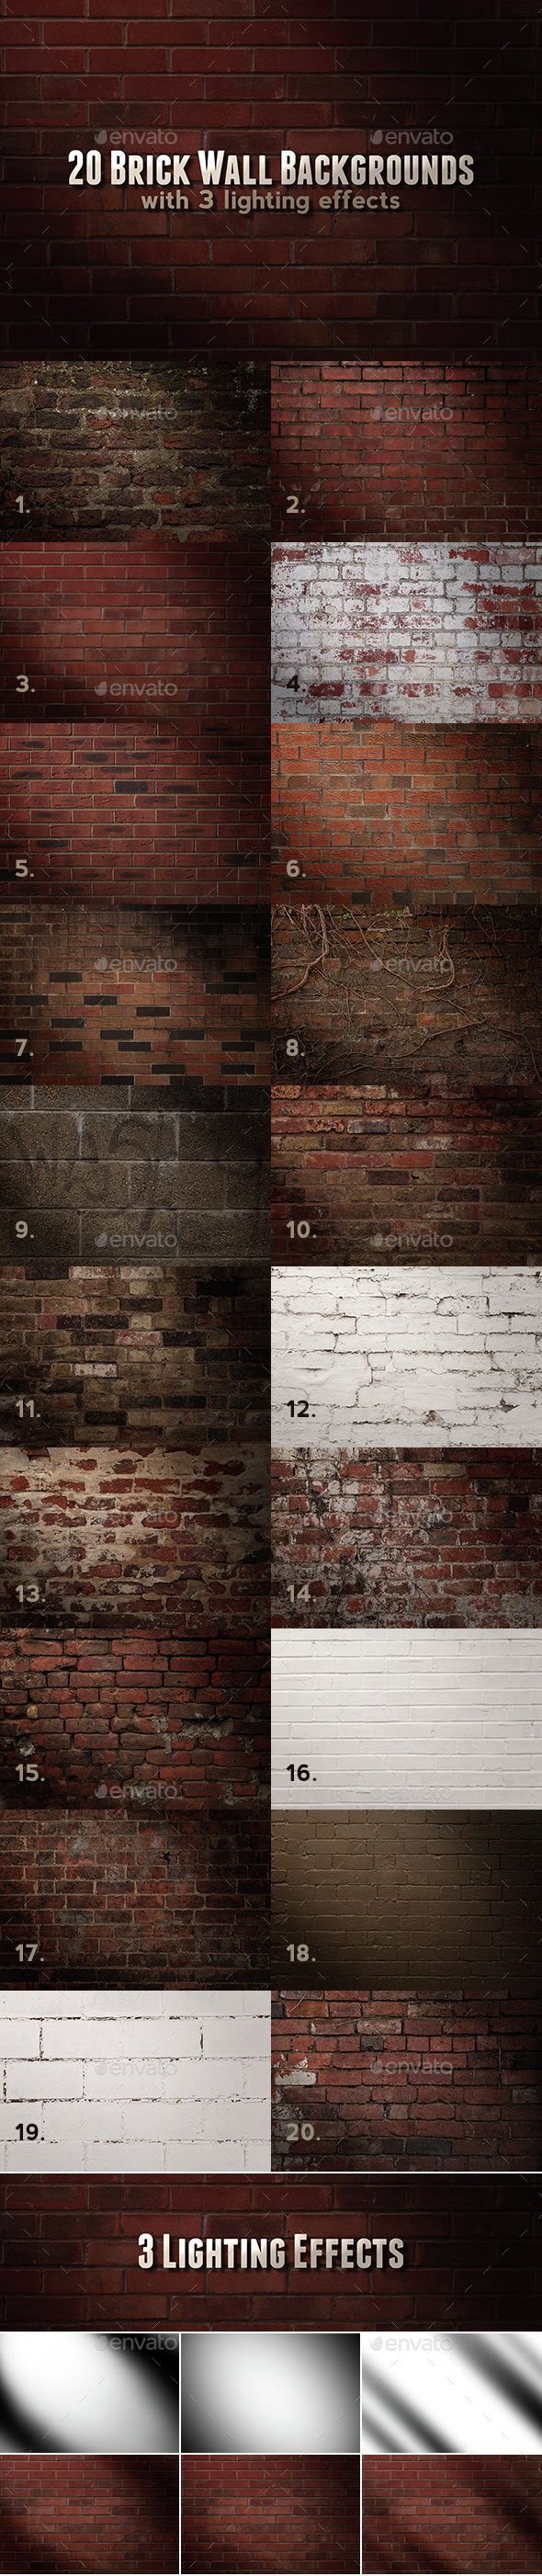 Brick Wall Backgrounds - Stone Textures